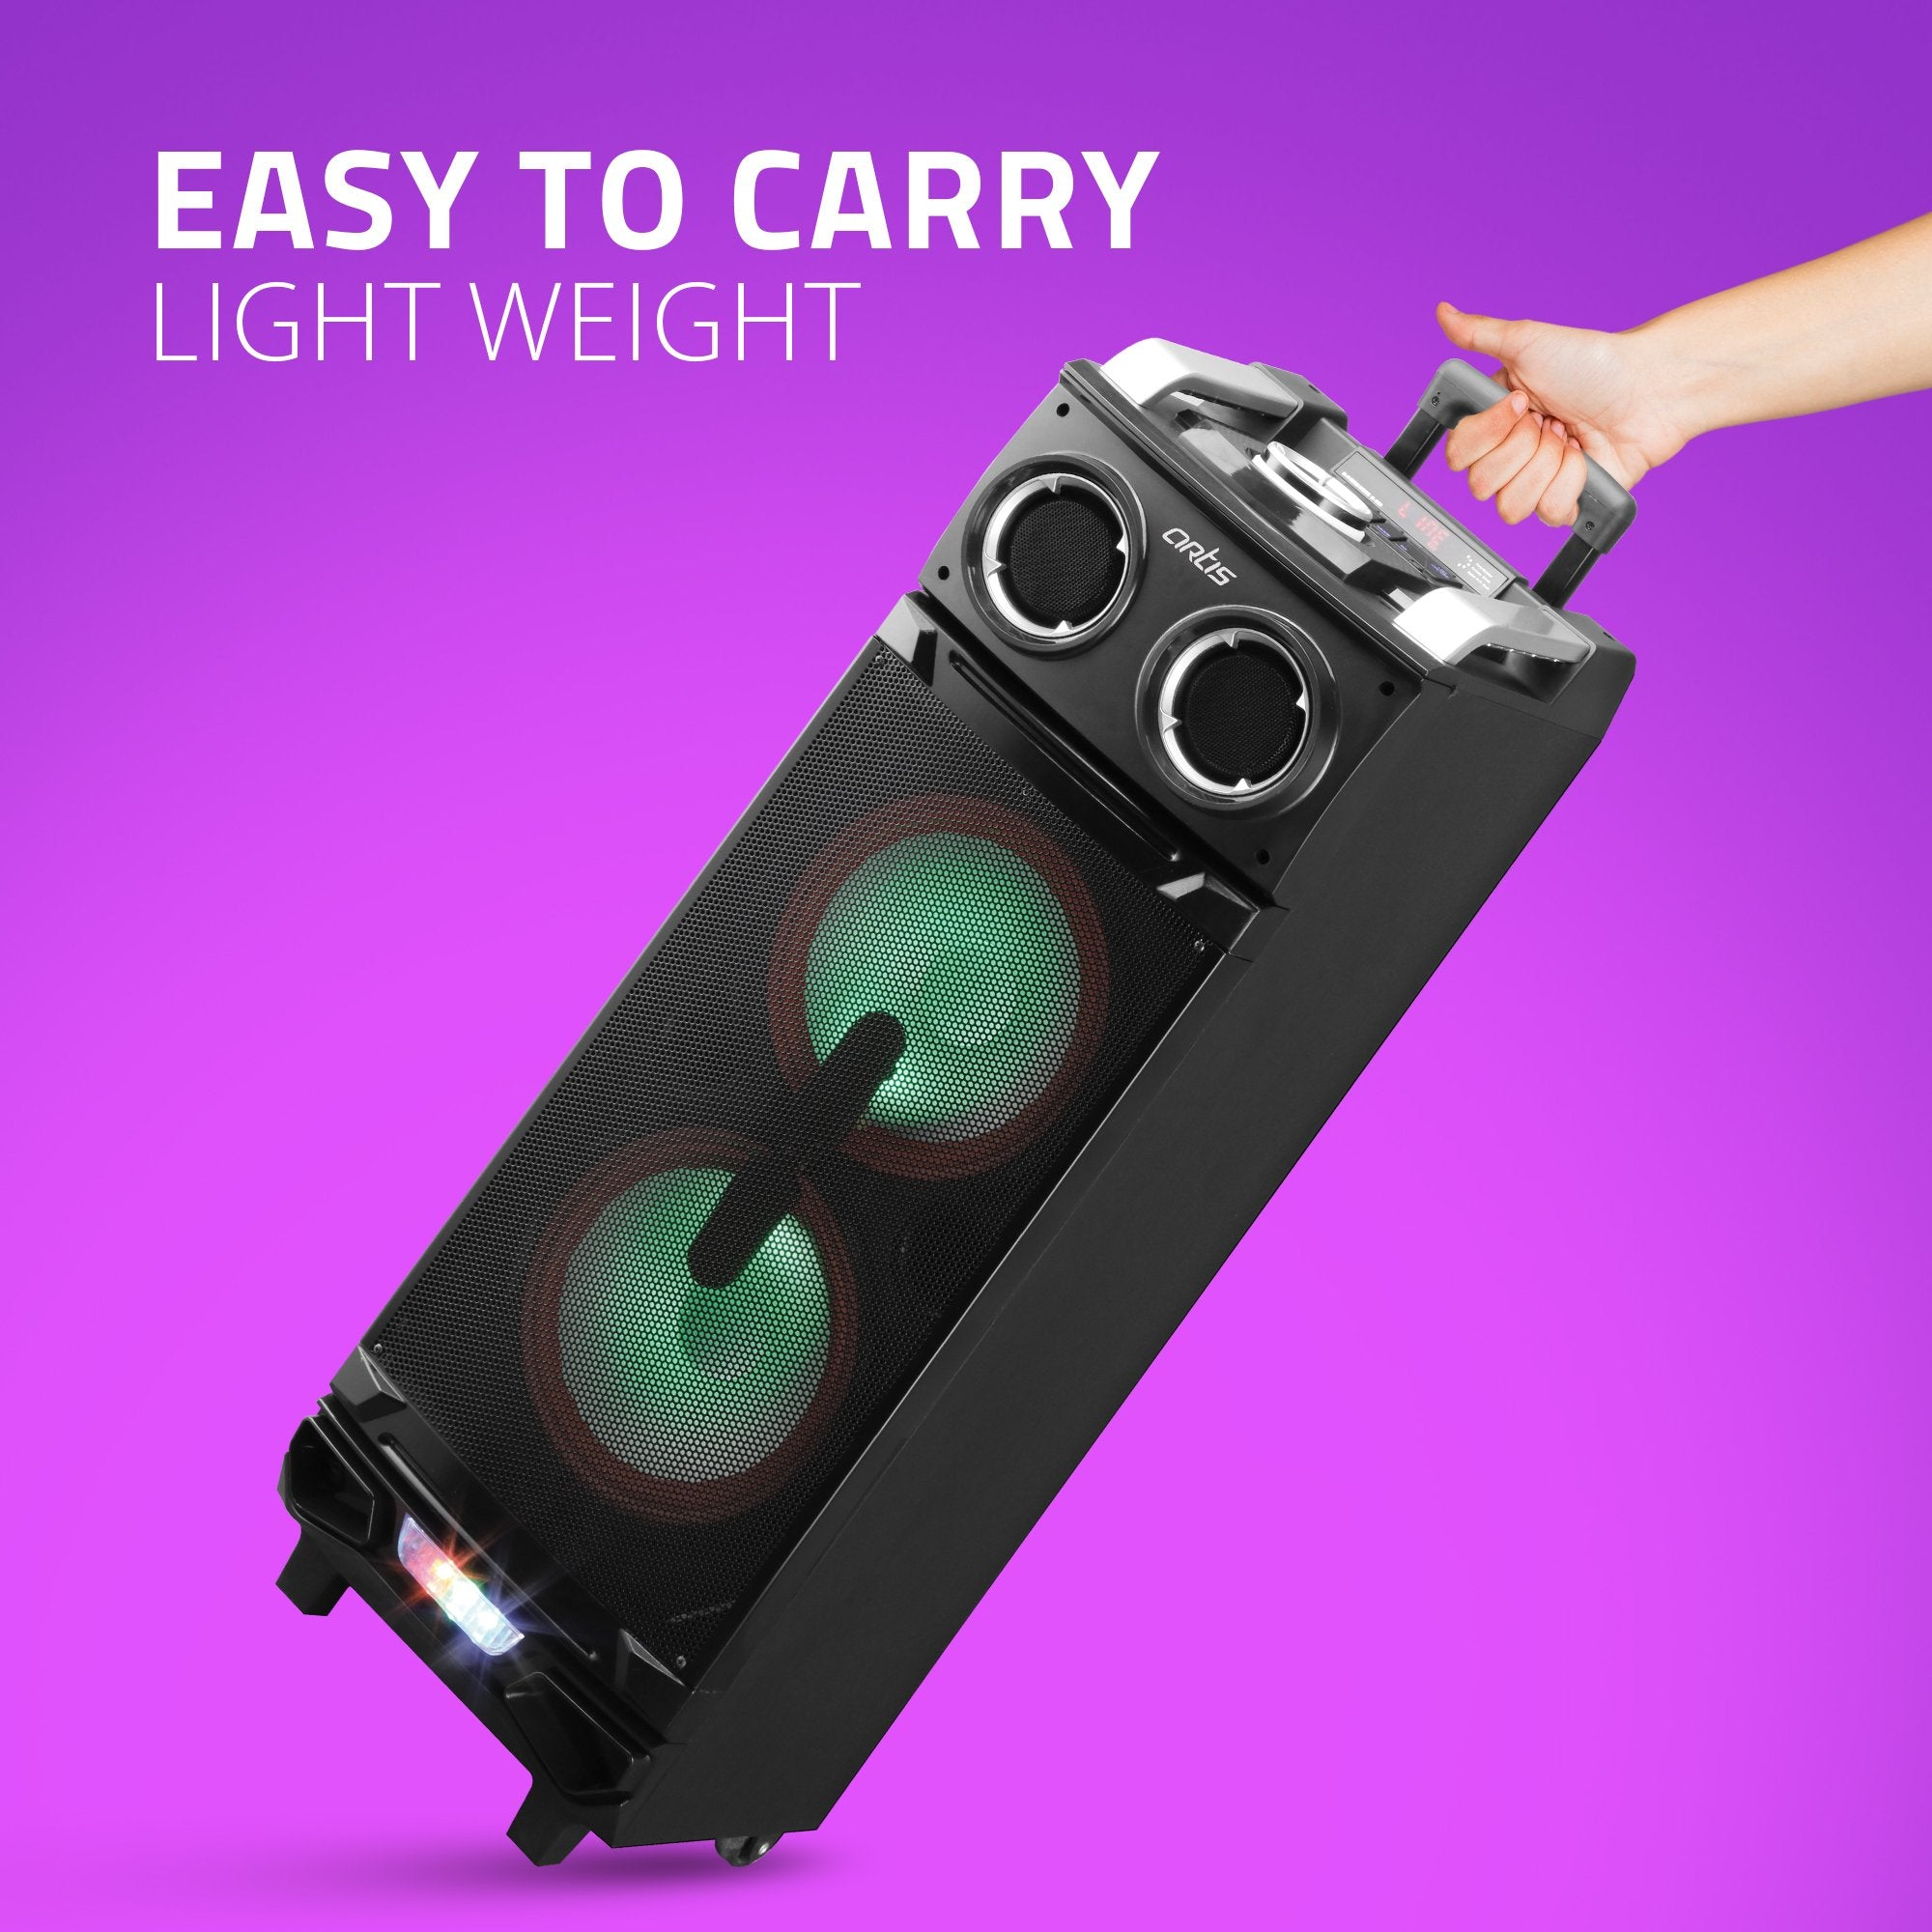 Artis BT900 Bluetooth Trolley Speaker Easy To Carry